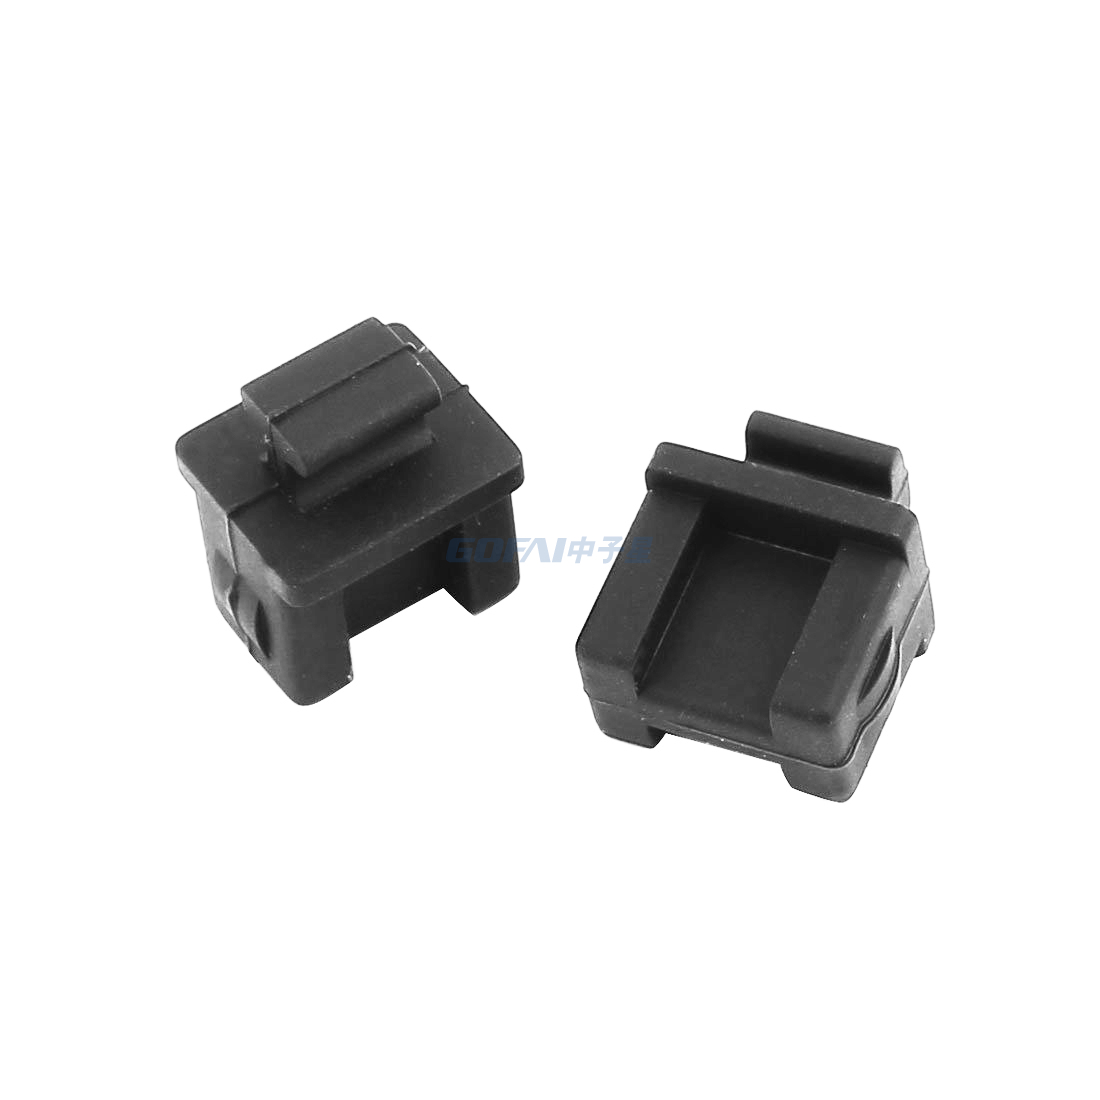 SFP Silicone Protectors Cap Port Dust Cover